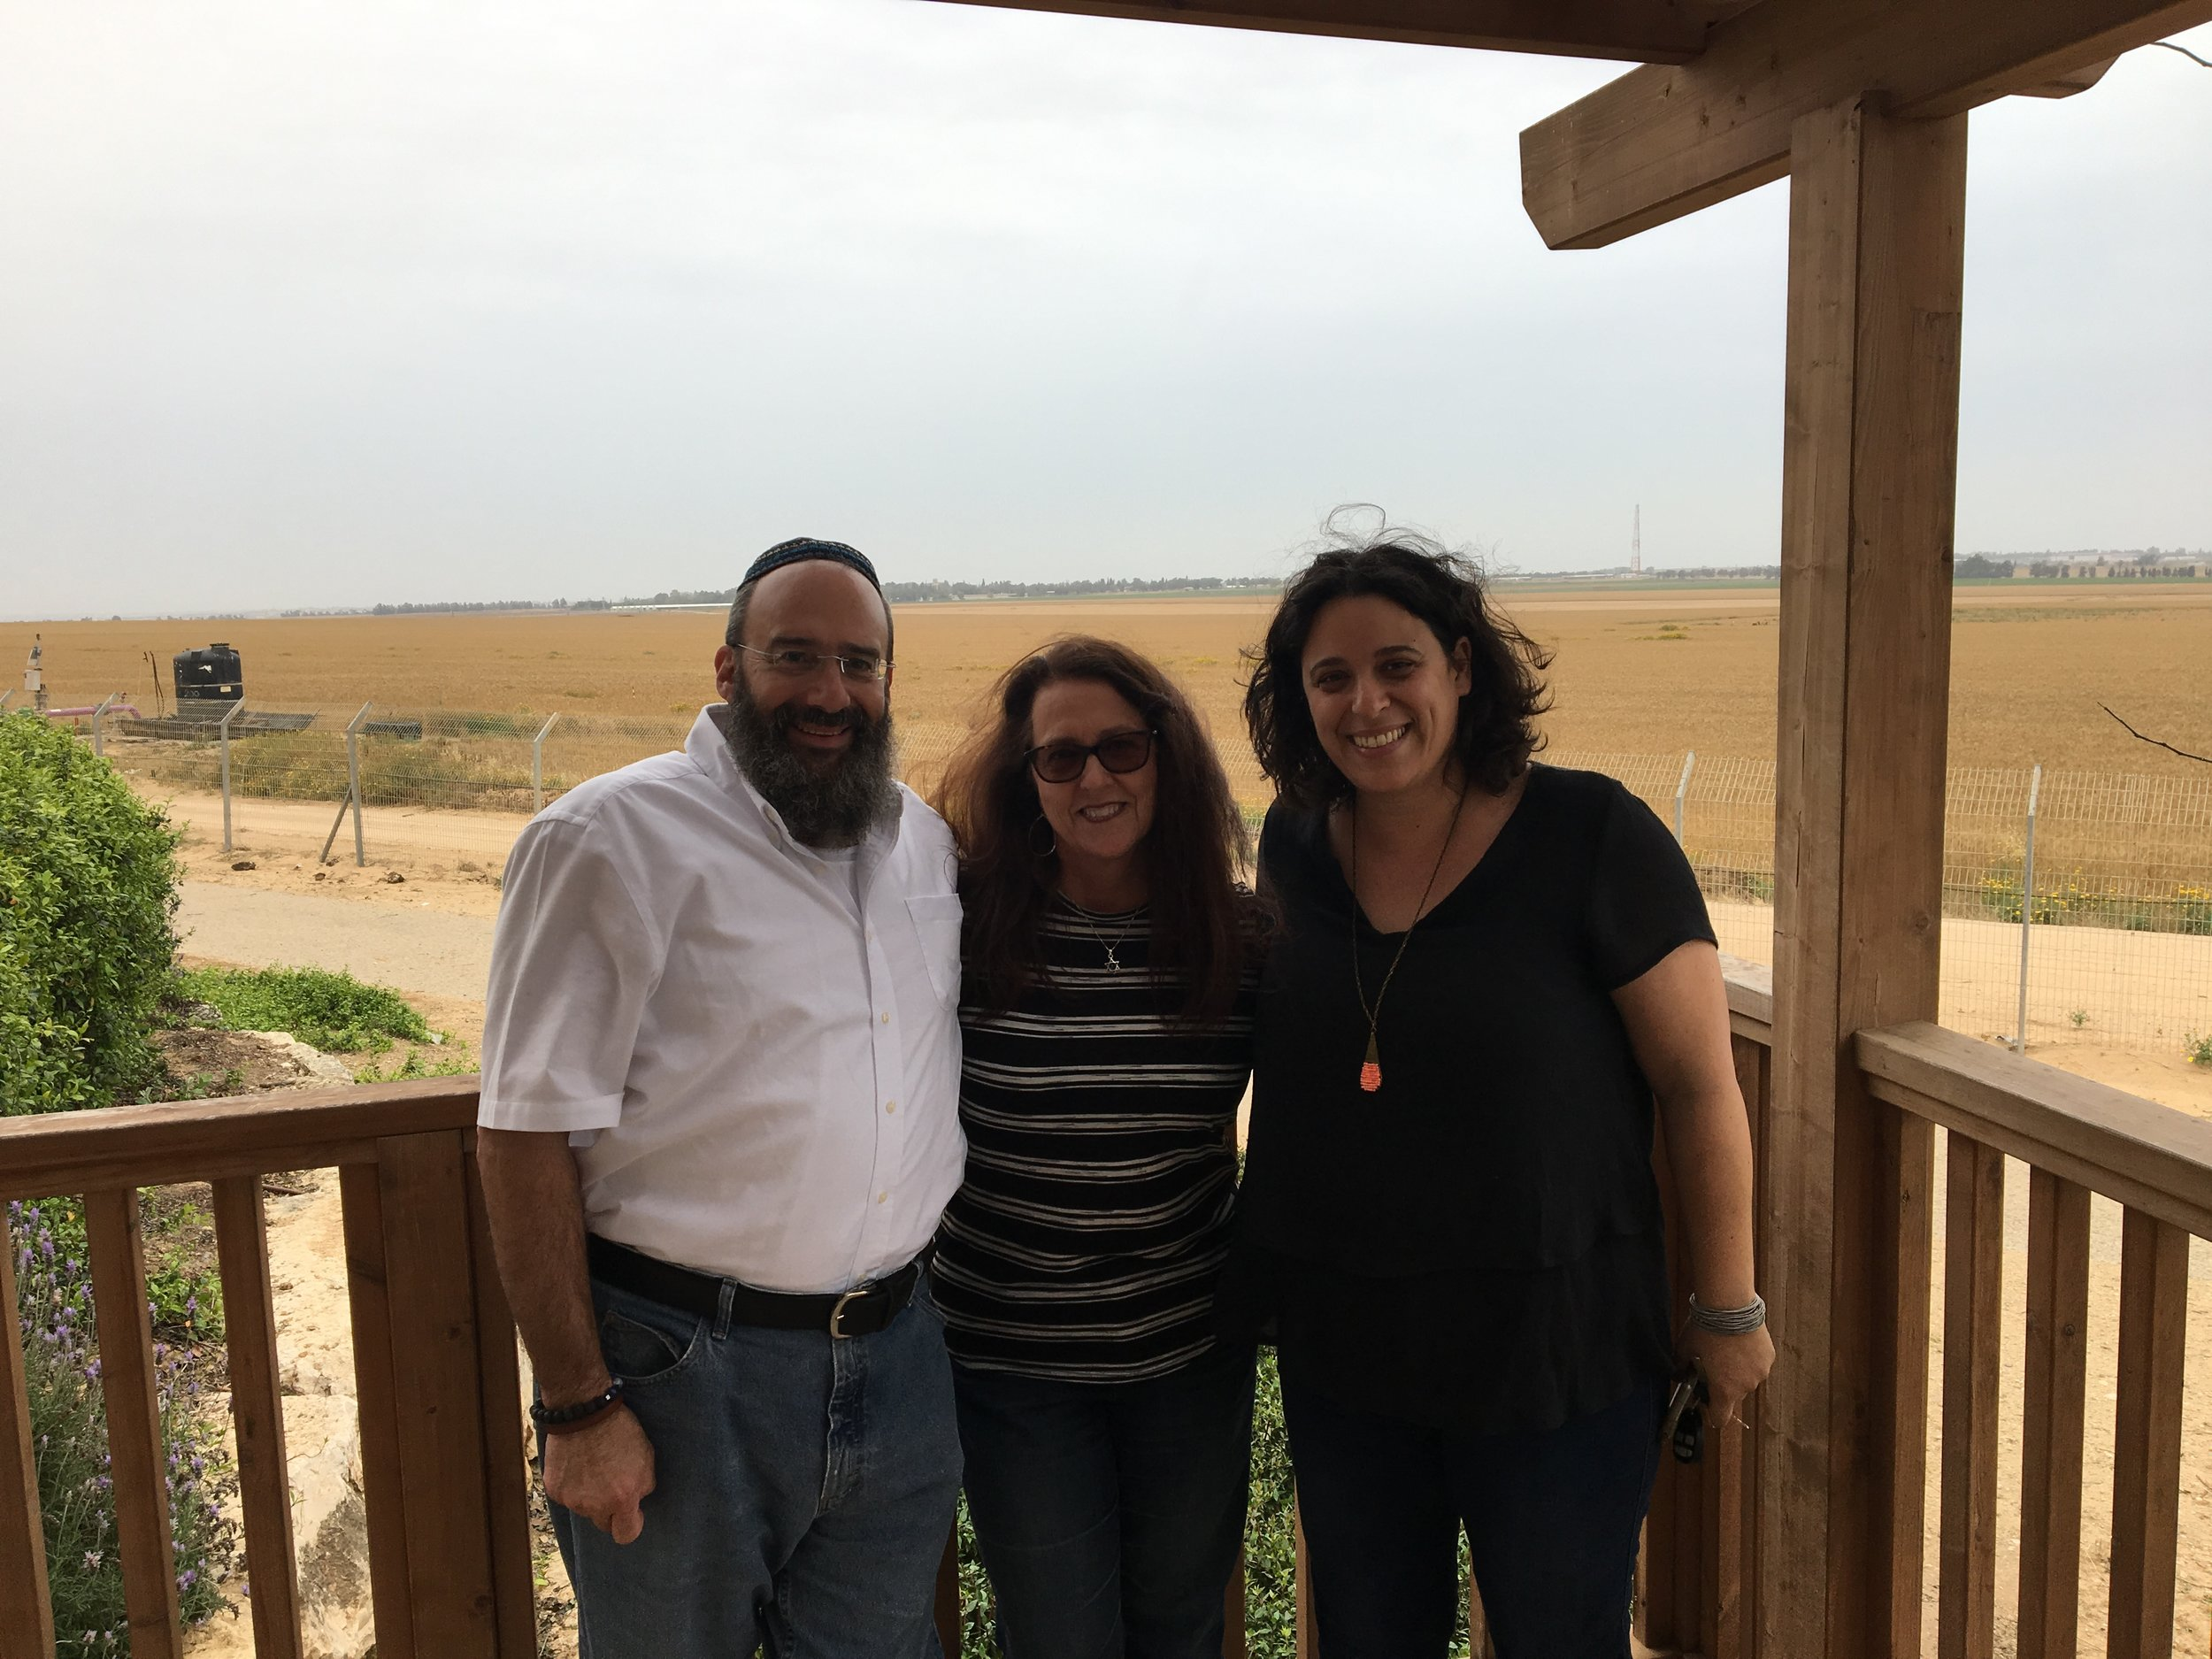 Shmuel Bowman, Deby Brown and Limor Eilat are standing less than a mile from the Gaza border.